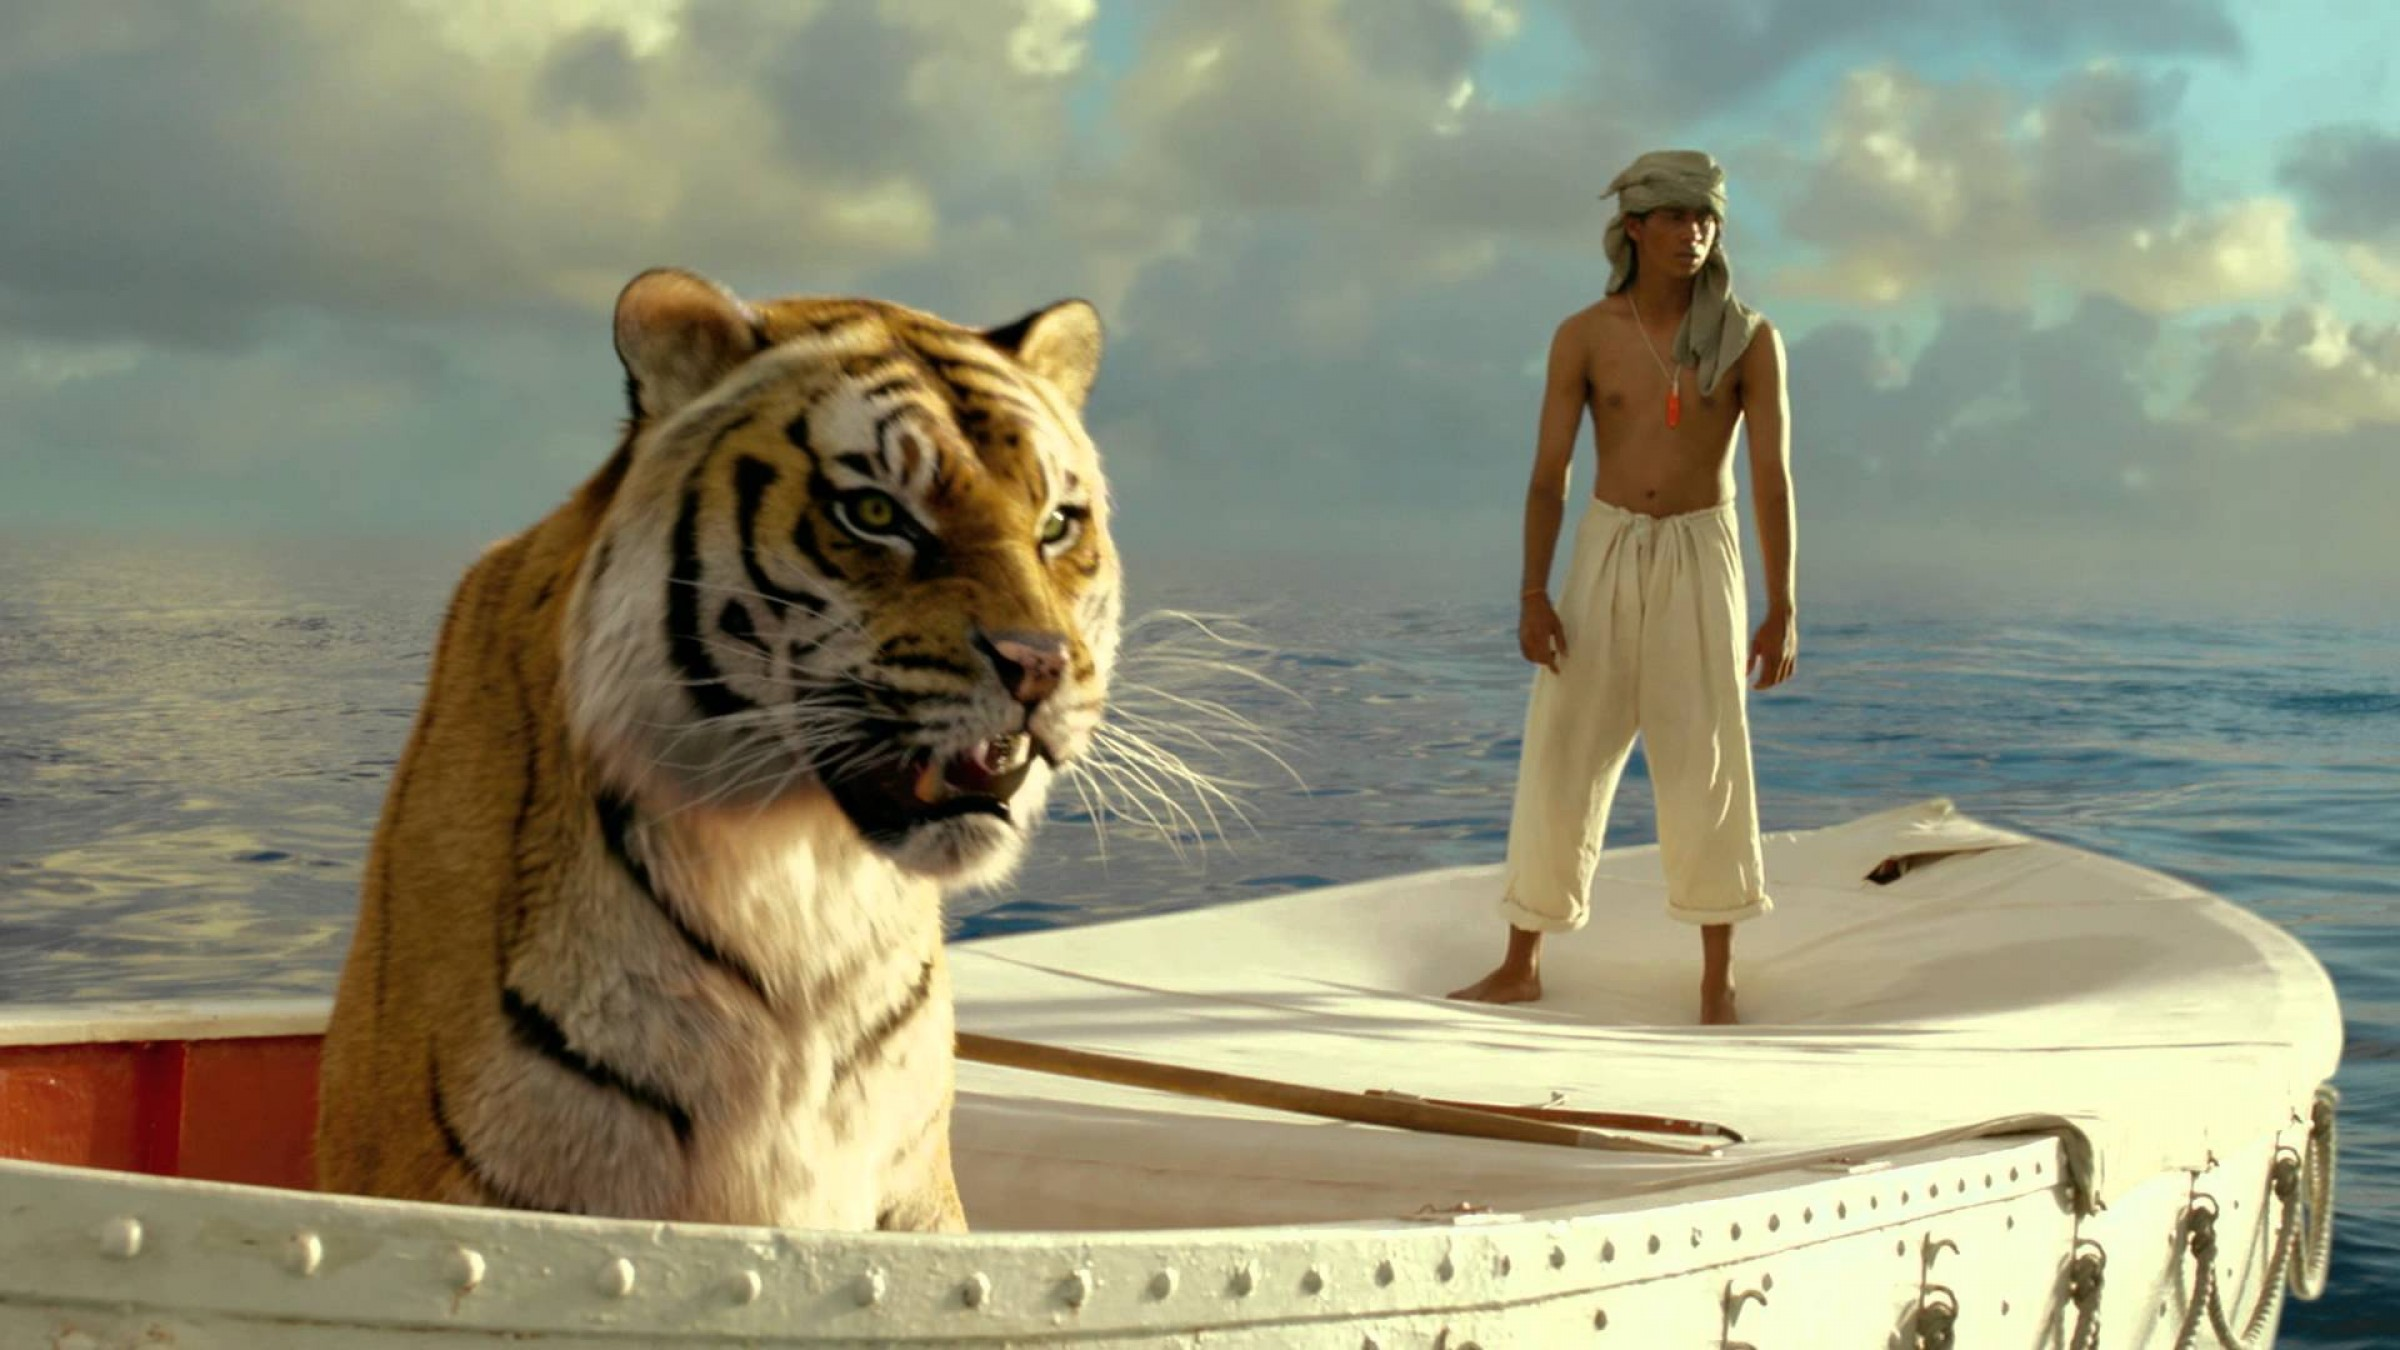 essays on life of pi best images about teaching life of pi the  watch inside the cinematography of life of pi dp claudio m da